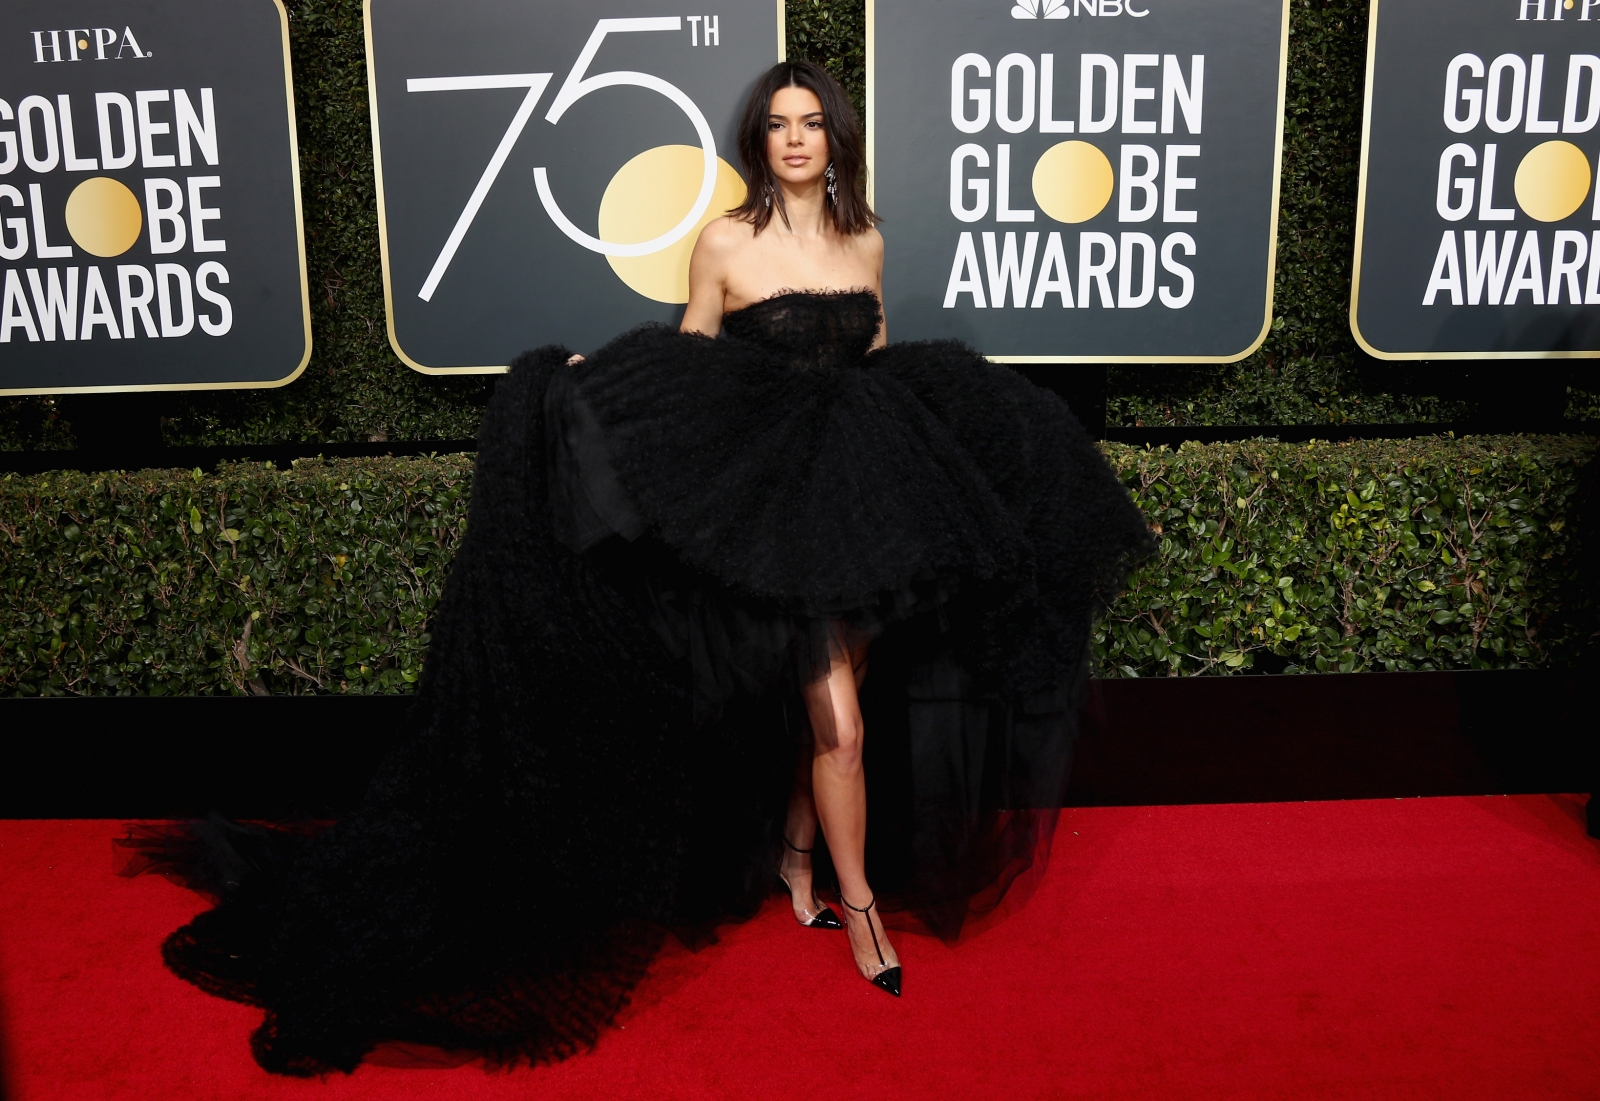 Kendall Jenner Responds to Critics of Her Acne at Golden Globes